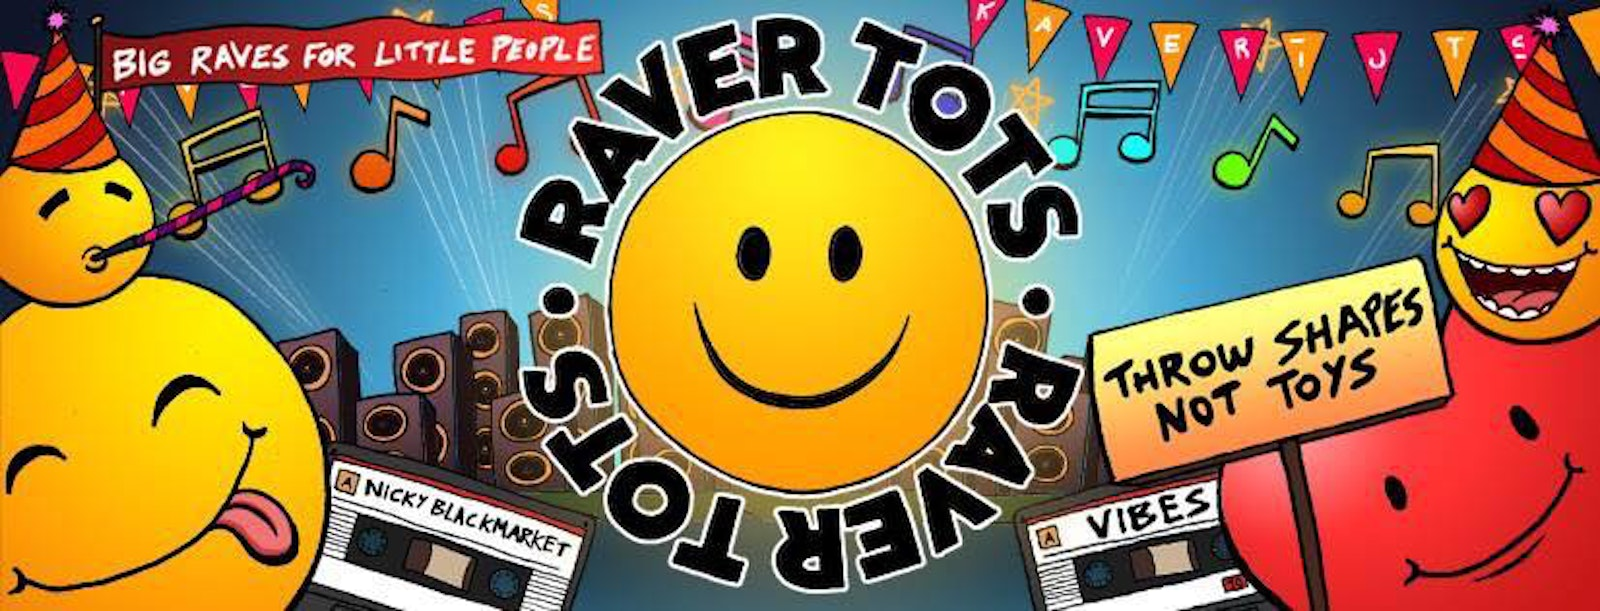 Raver Tots Newcastle Halloween Party!